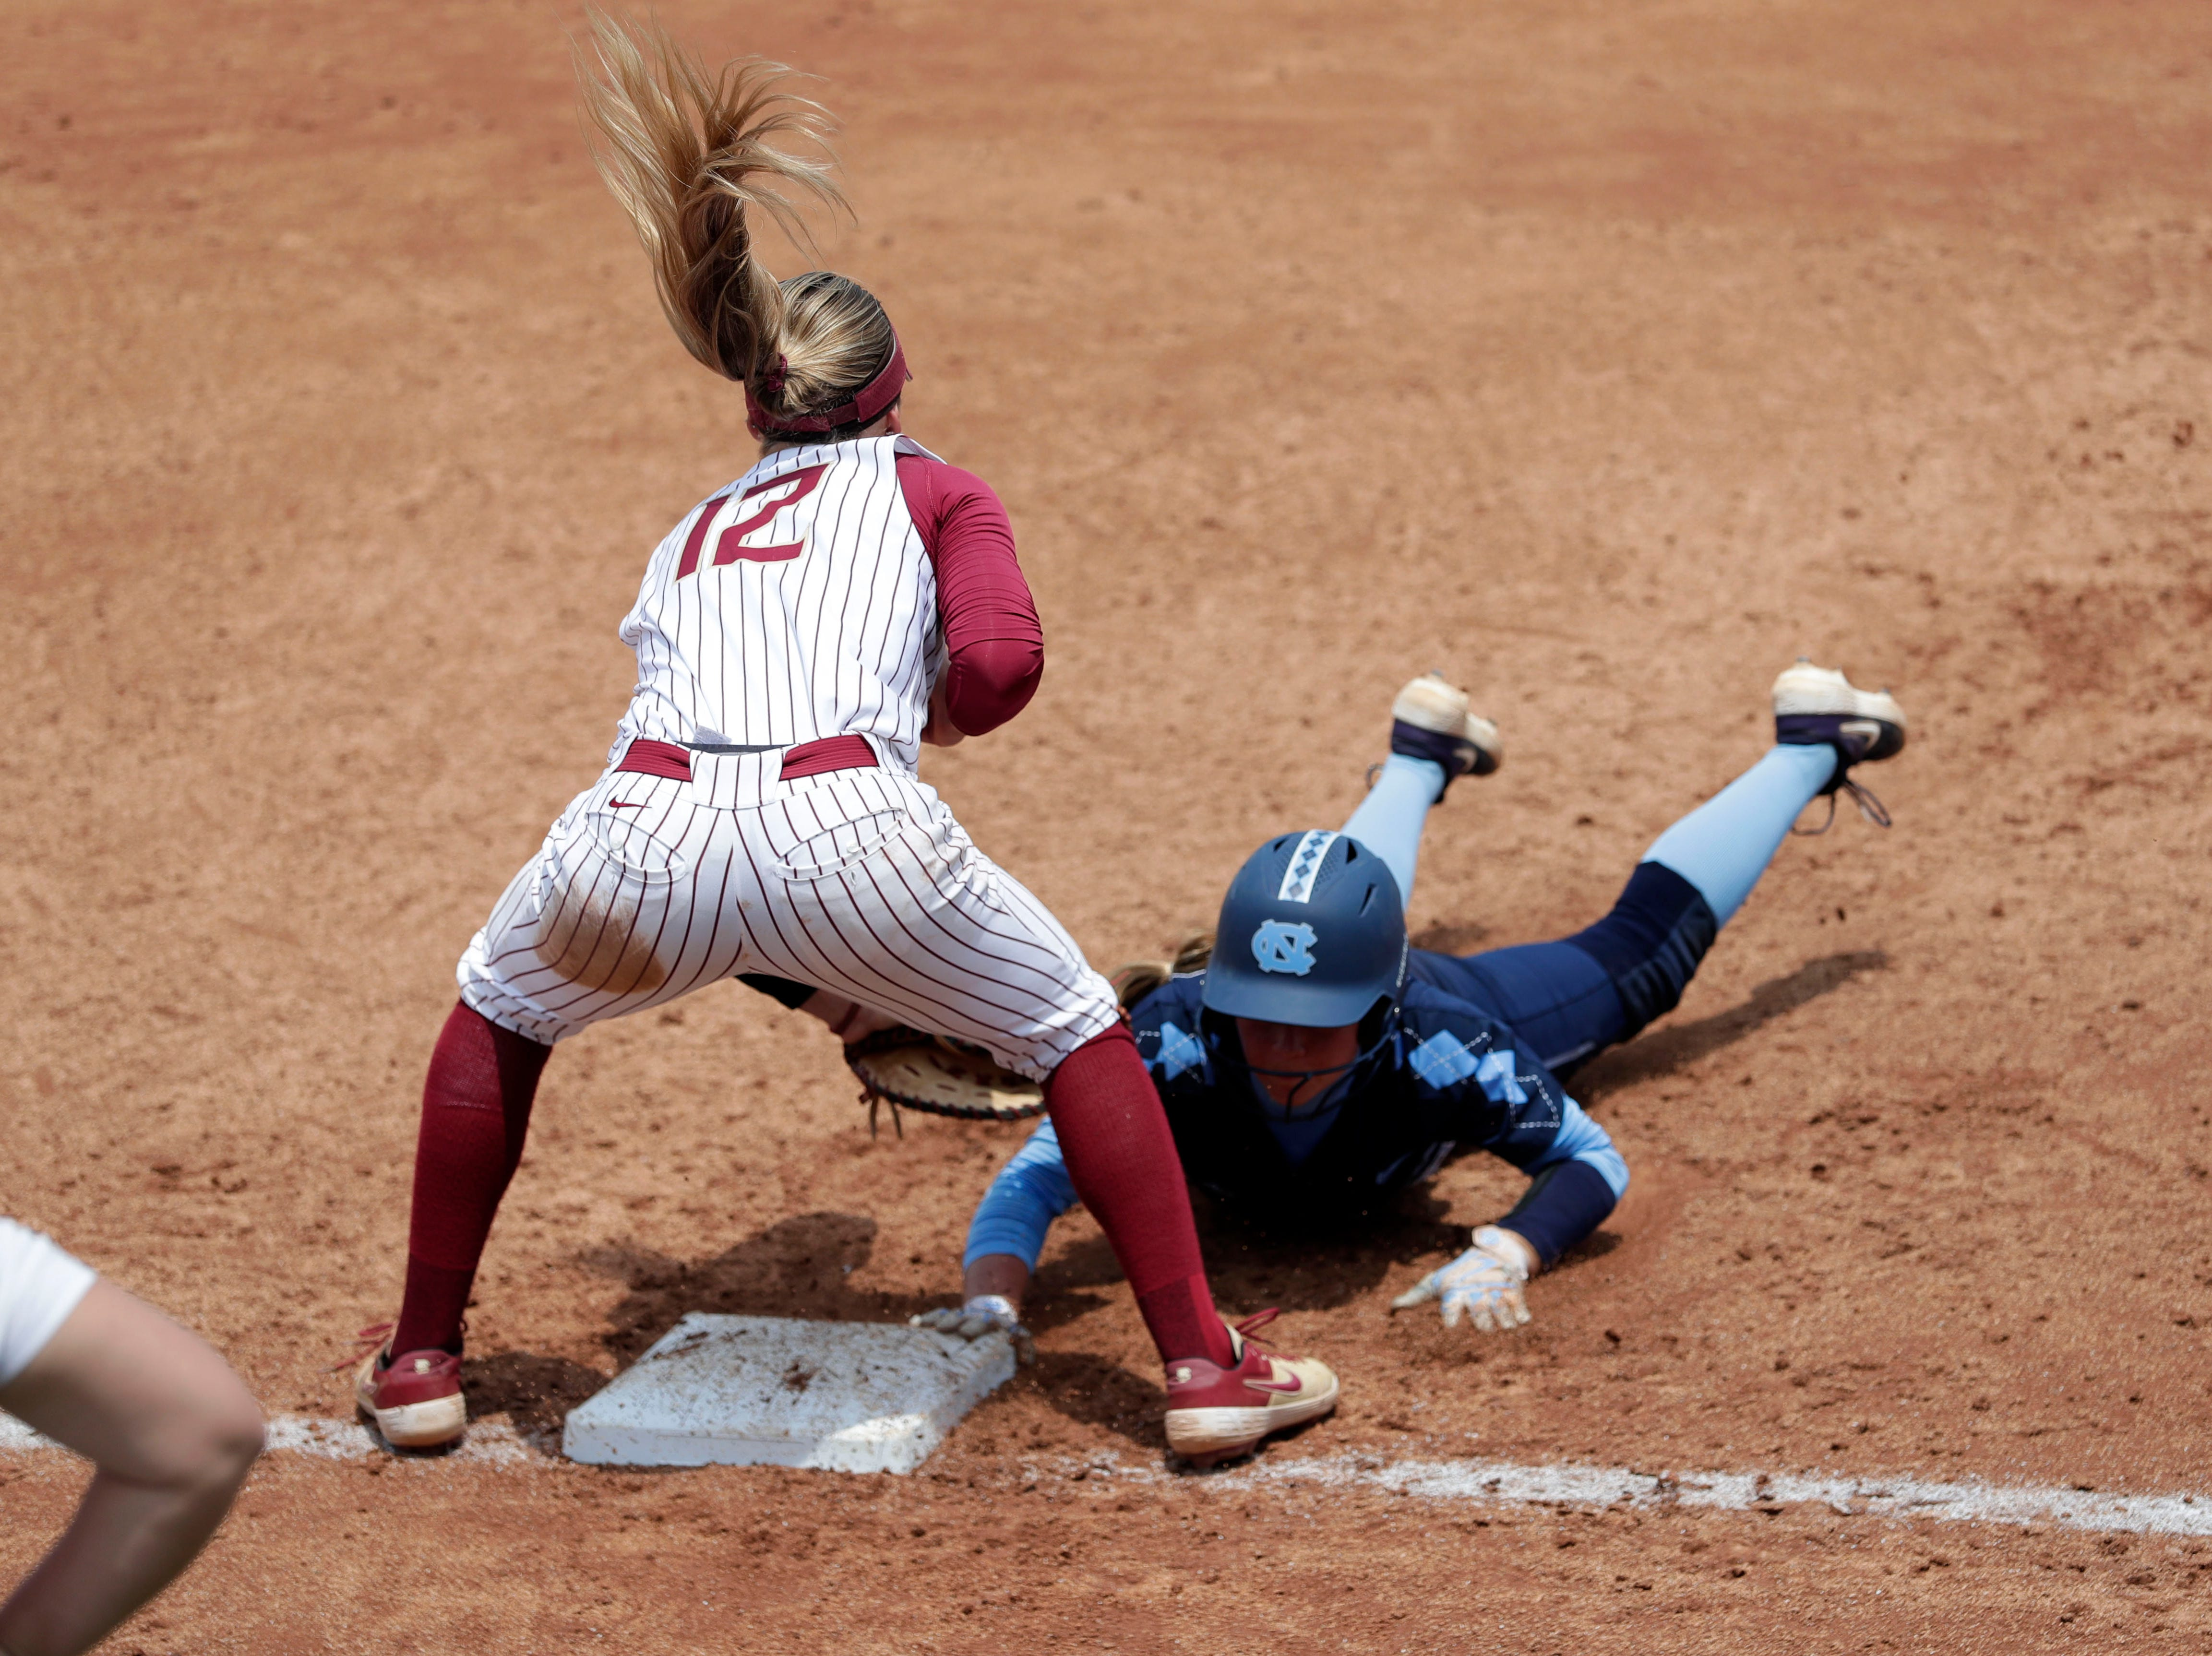 Florida State Seminoles infielder Carsyn Gordon (12) narrowly misses tagging the runner out at first. The Florida State Seminoles host the UNC Tar Heels for the ACC Softball Tournament finals Saturday, May 11, 2019.